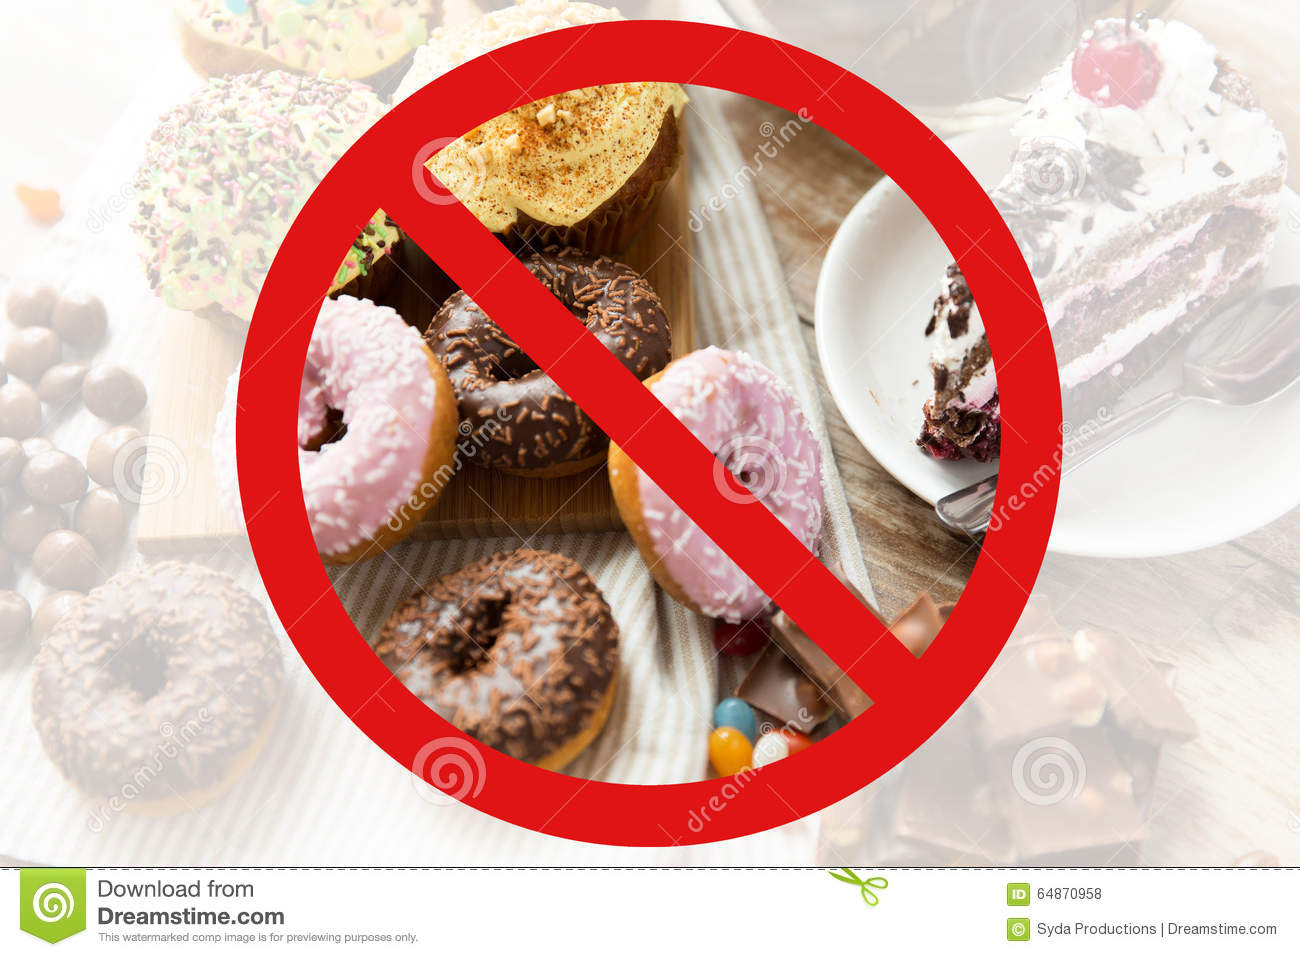 Close Up Of Sweets On Table Behind No Symbol Stock Photo